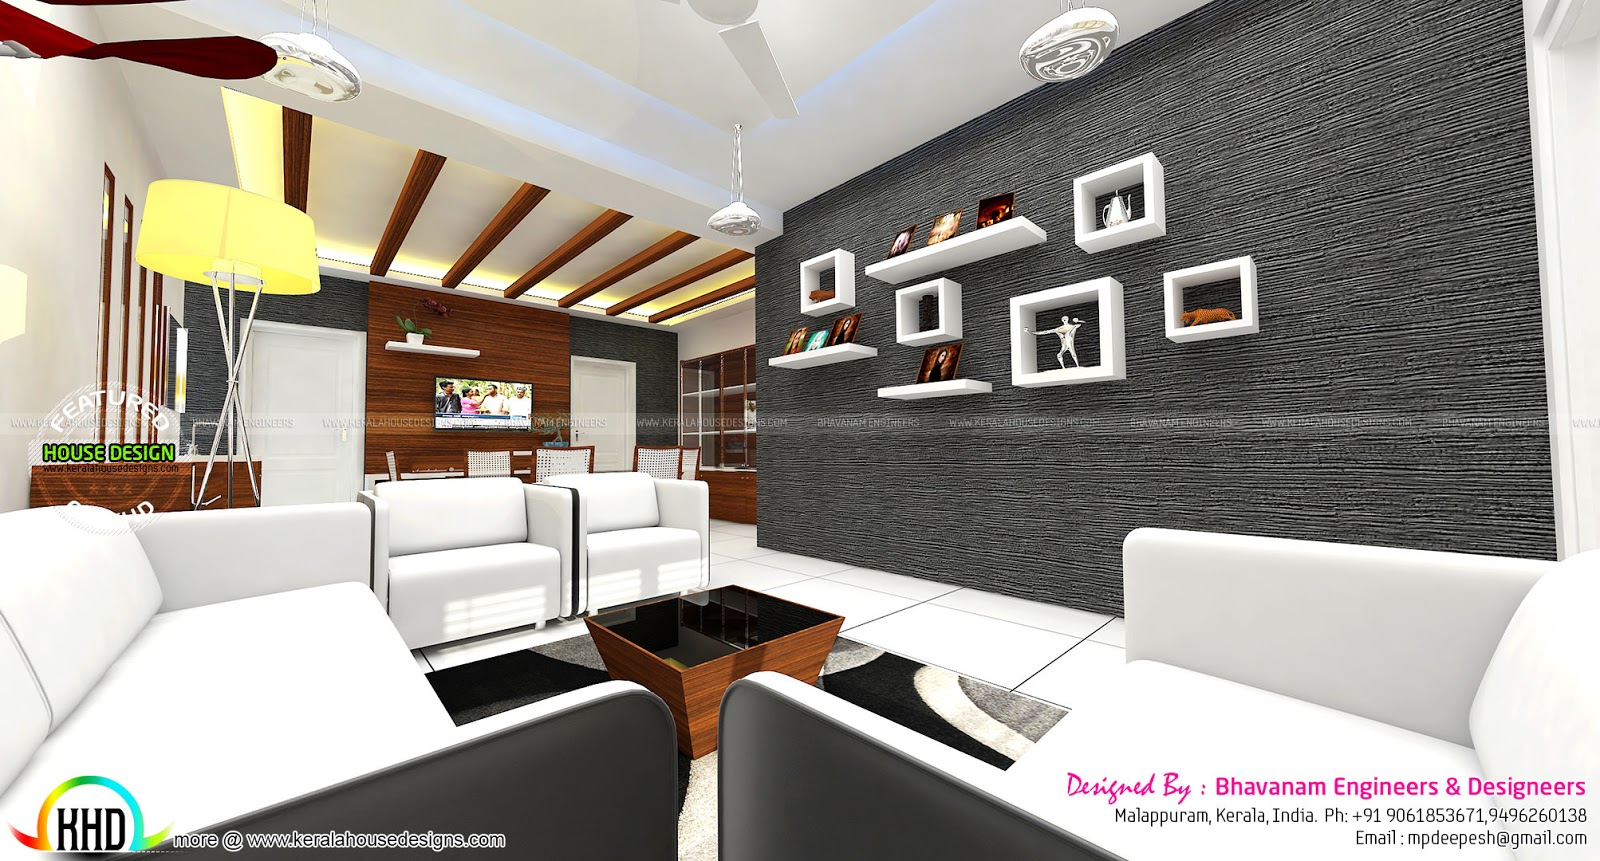 Living room interior decors ideas kerala home design and for Kerala home interior designs photos